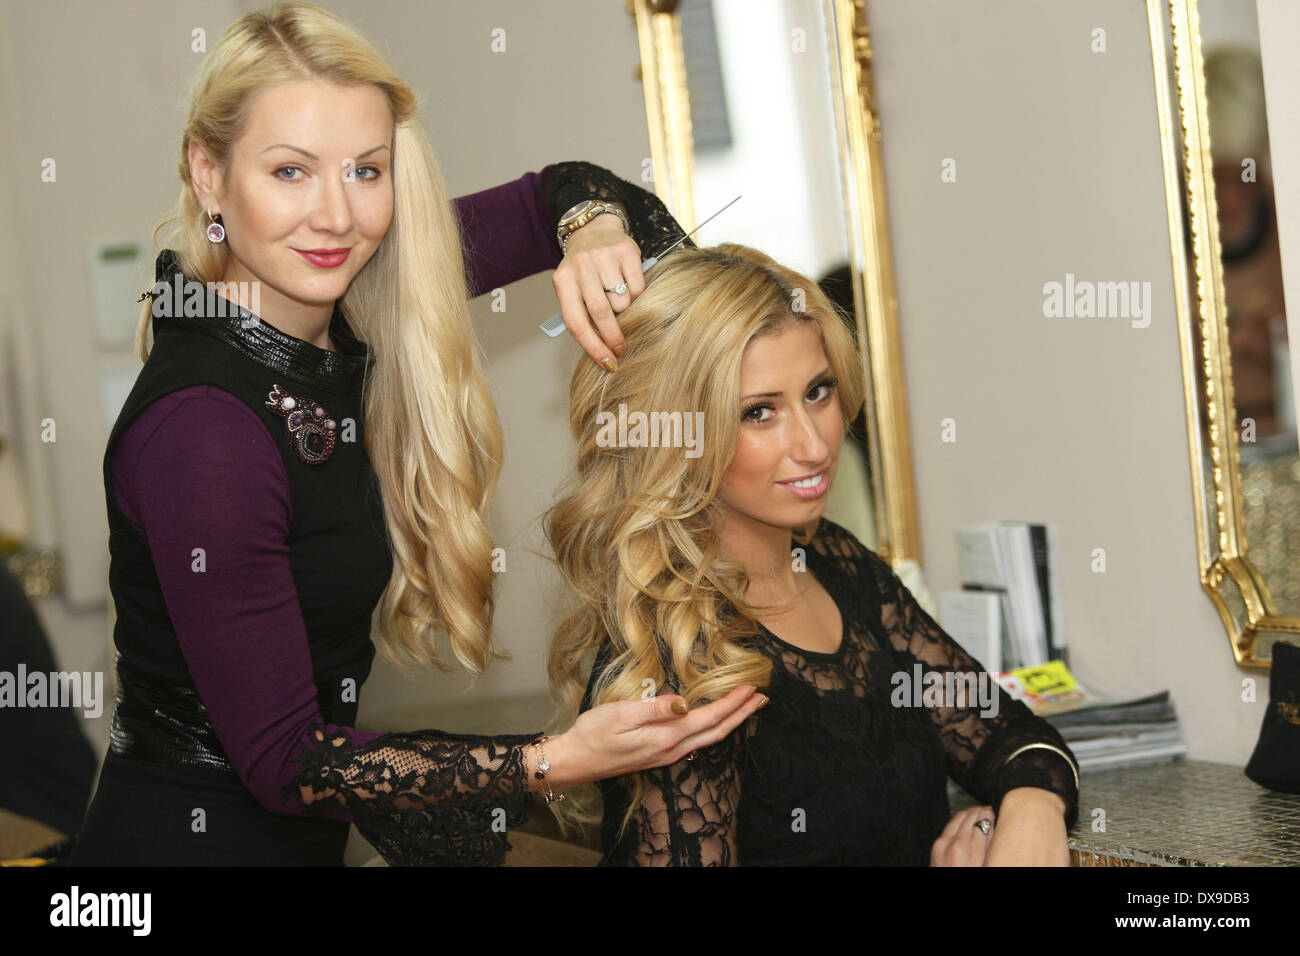 Stacey solomon at tatiana hair extensions salon in london london stacey solomon at tatiana hair extensions salon in london london england 131112 featuring stacey solomon where london u pmusecretfo Images